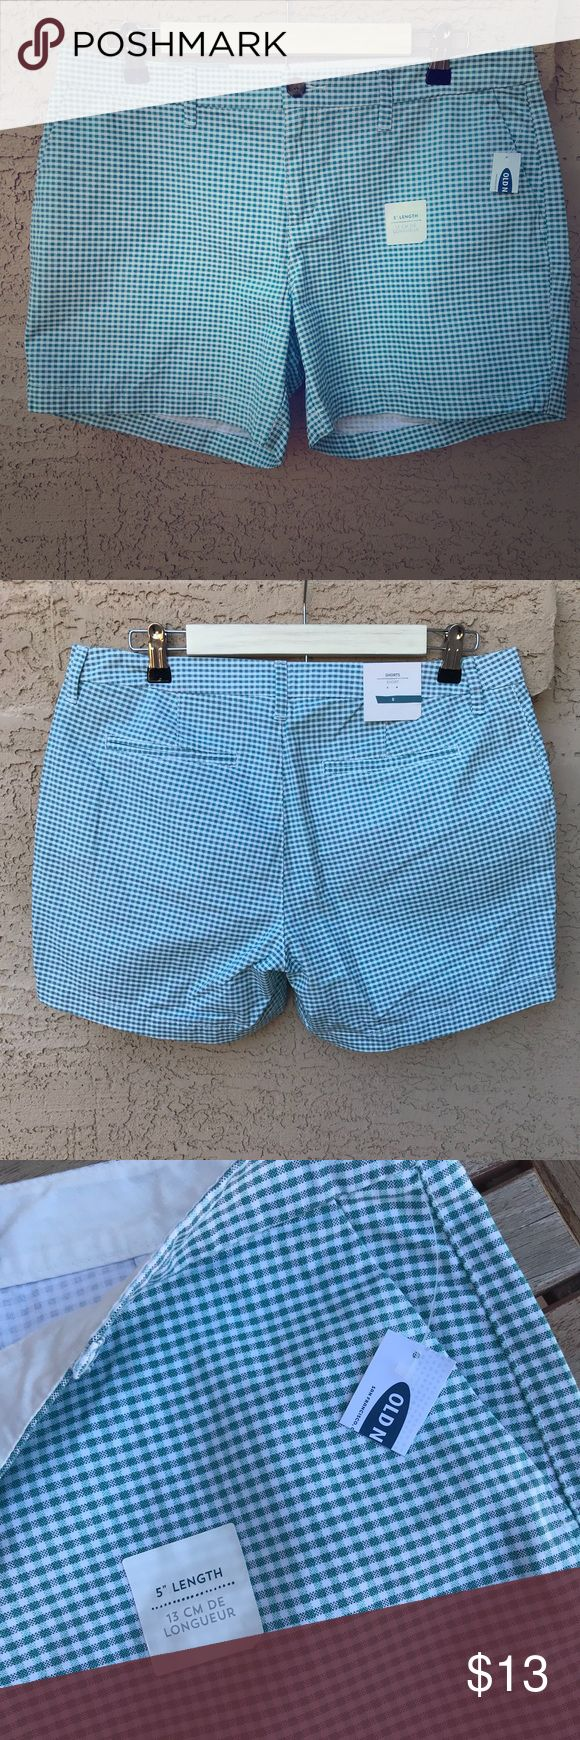 """🆕 Old Navy Green Gingham Womens Shorts NWT Size 8 Super cute light green and white check gingham pattern. These Old Navy shorts are brand new with tags (one tag is cut where price was but others I have were $22.94), size 8 with a 5"""" inseam. The overall width at the top opening is about 17"""" wide. Please inspect photos and comment/message with questions, offers, or bundling! Thanks for looking.  Old Navy Green Gingham Shorts NWT Size 8  © 2018 YUNADEE STUDIO ALL RIGHTS RESERVED Old Navy…"""